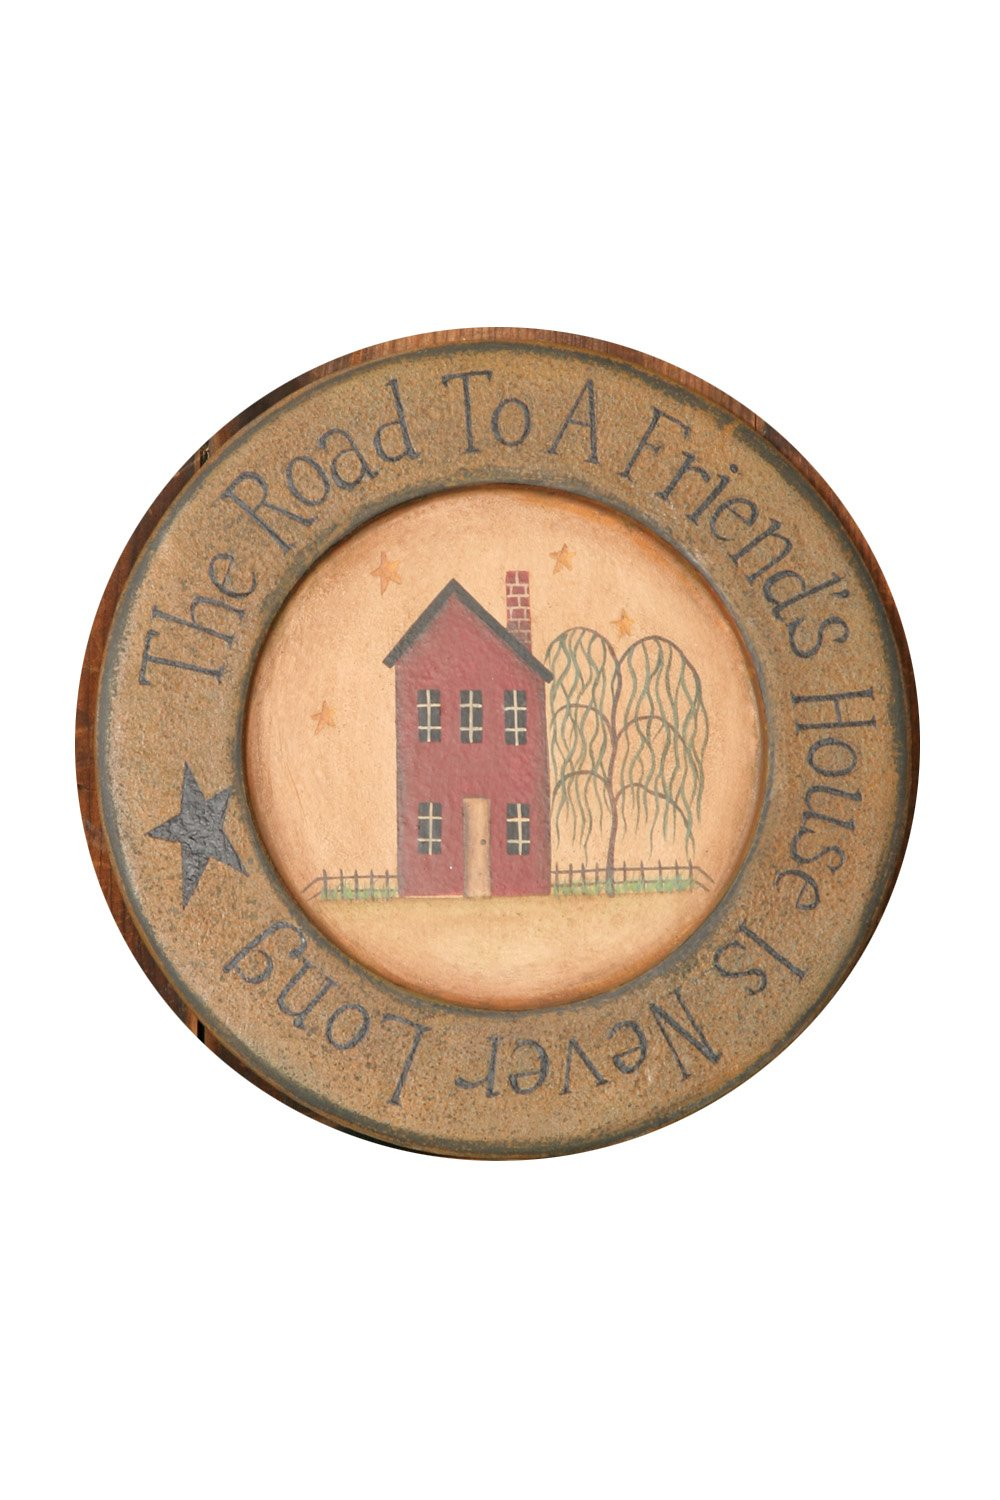 Your Heart's Delight Wood Home The Road to a Primitive Plate, 10-3/4-Inch